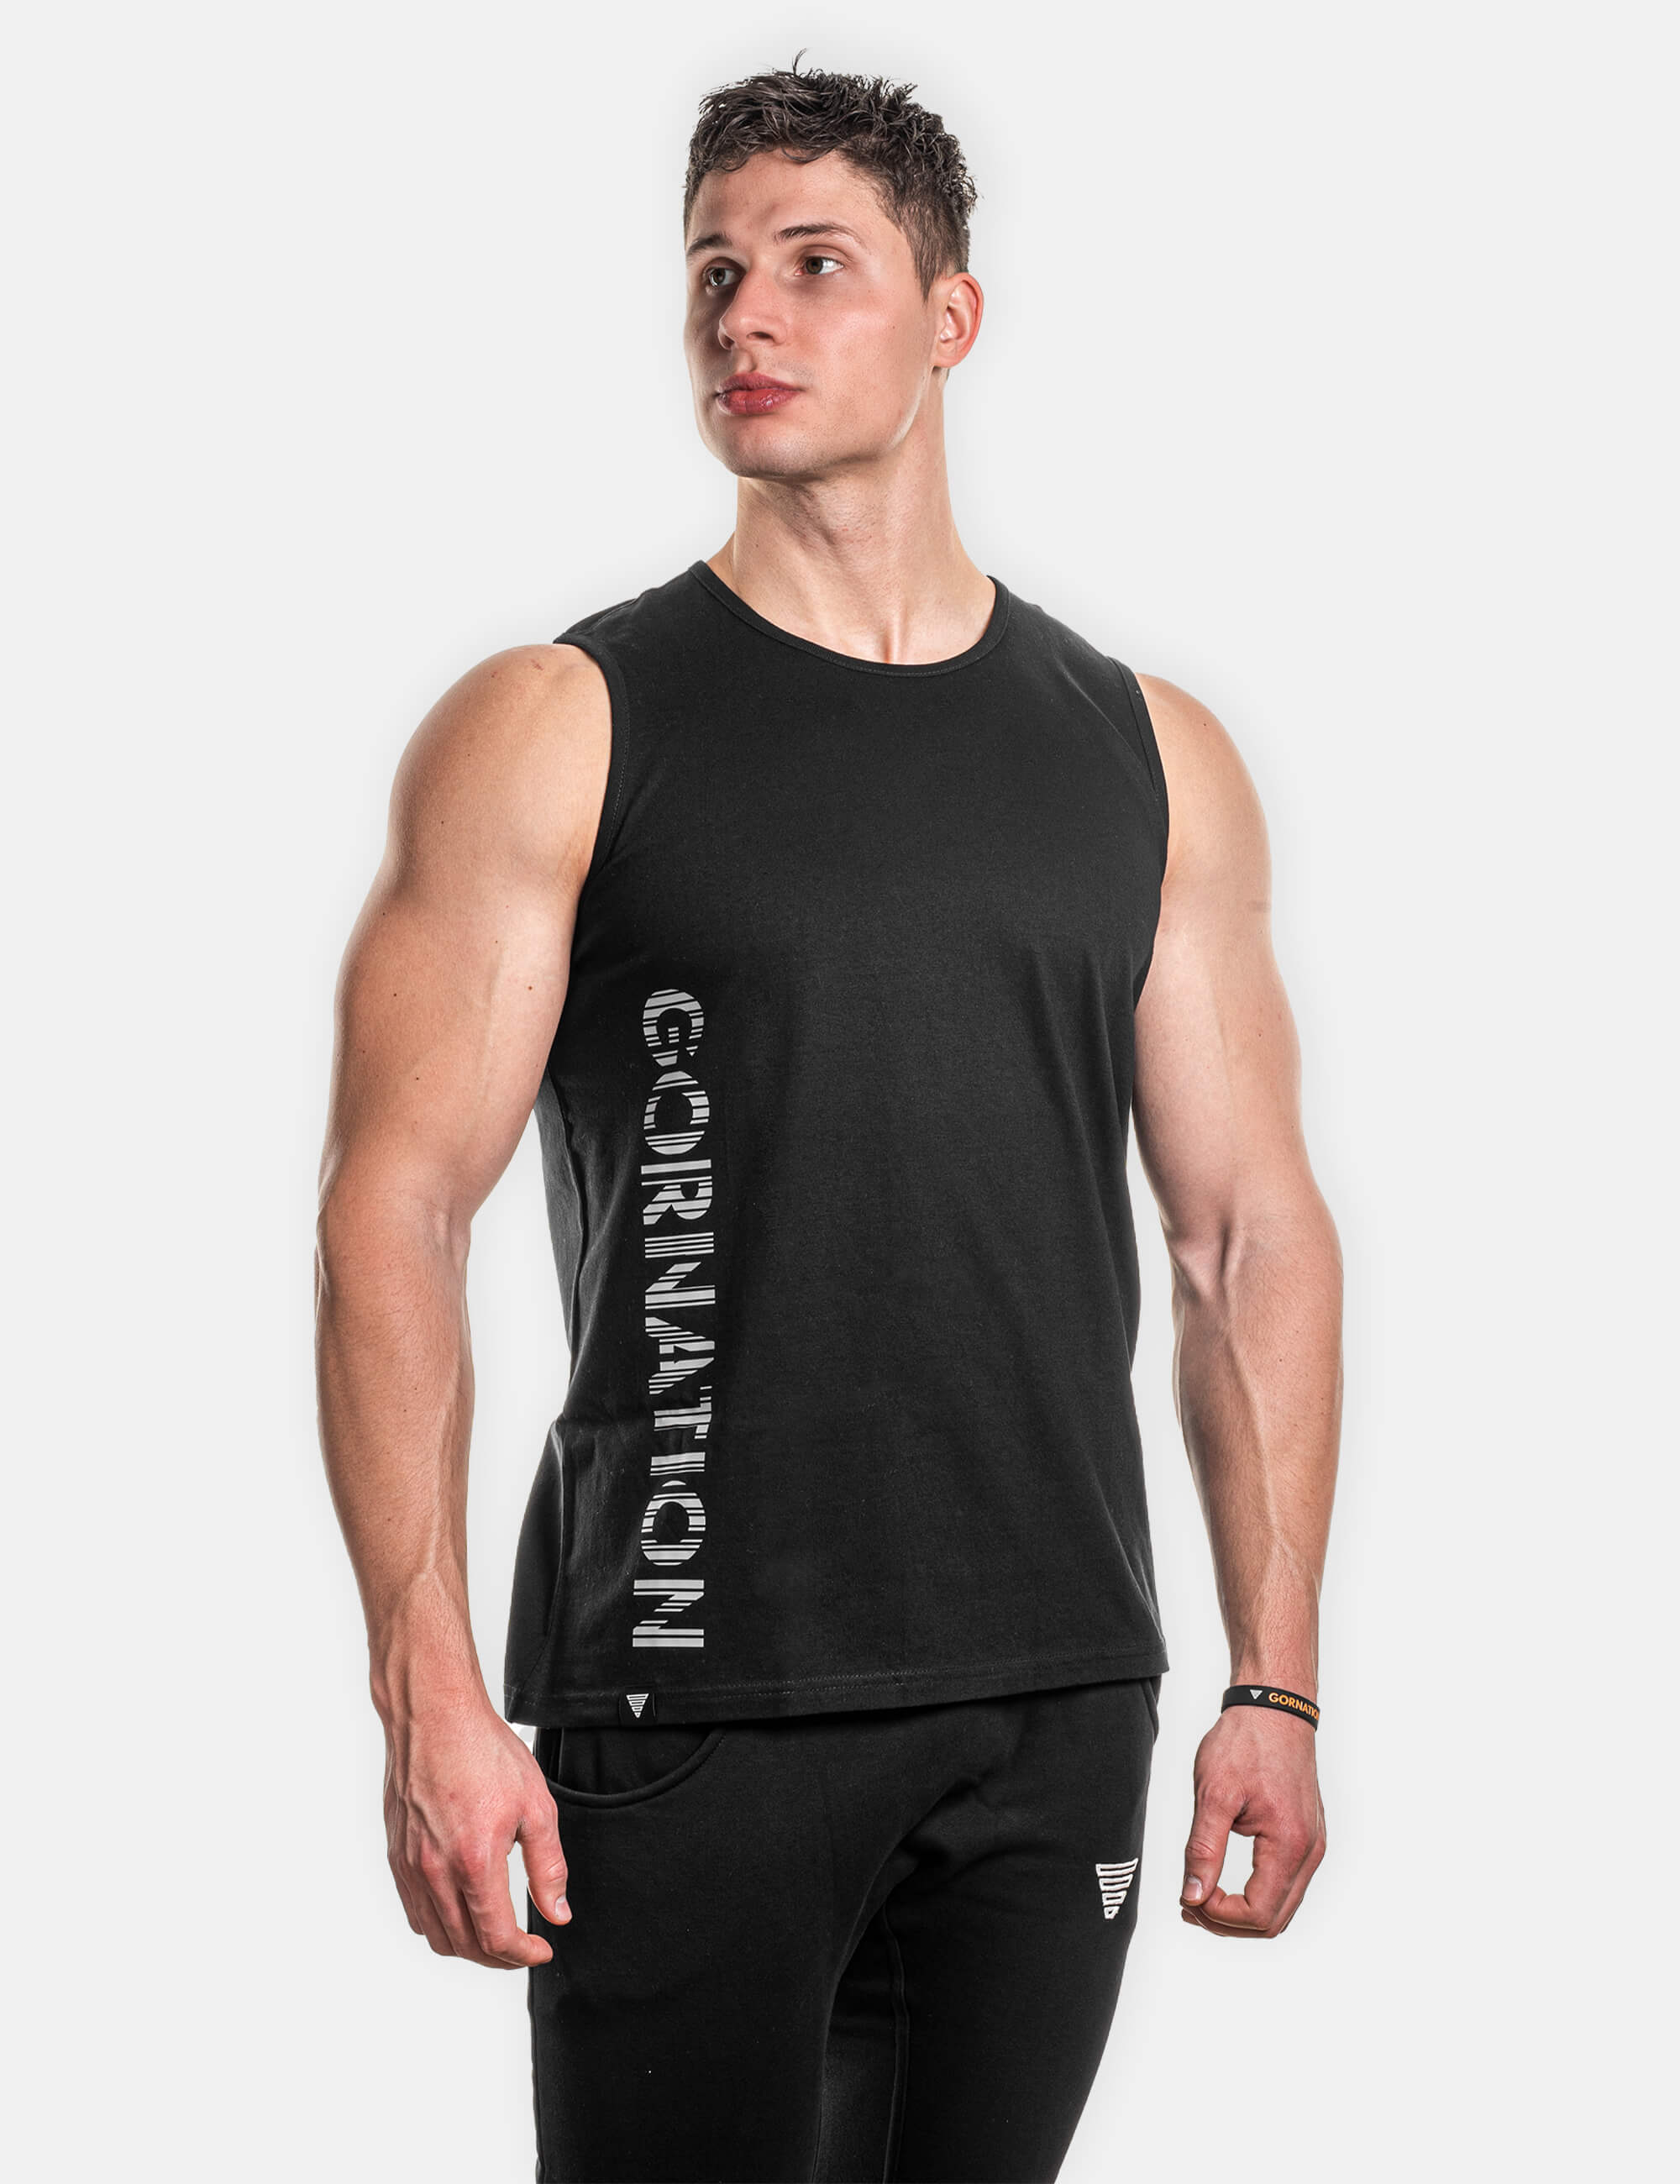 Calisthenics athlete wearing the classic barcode black tank top presenting the gornation brand on the frontside.